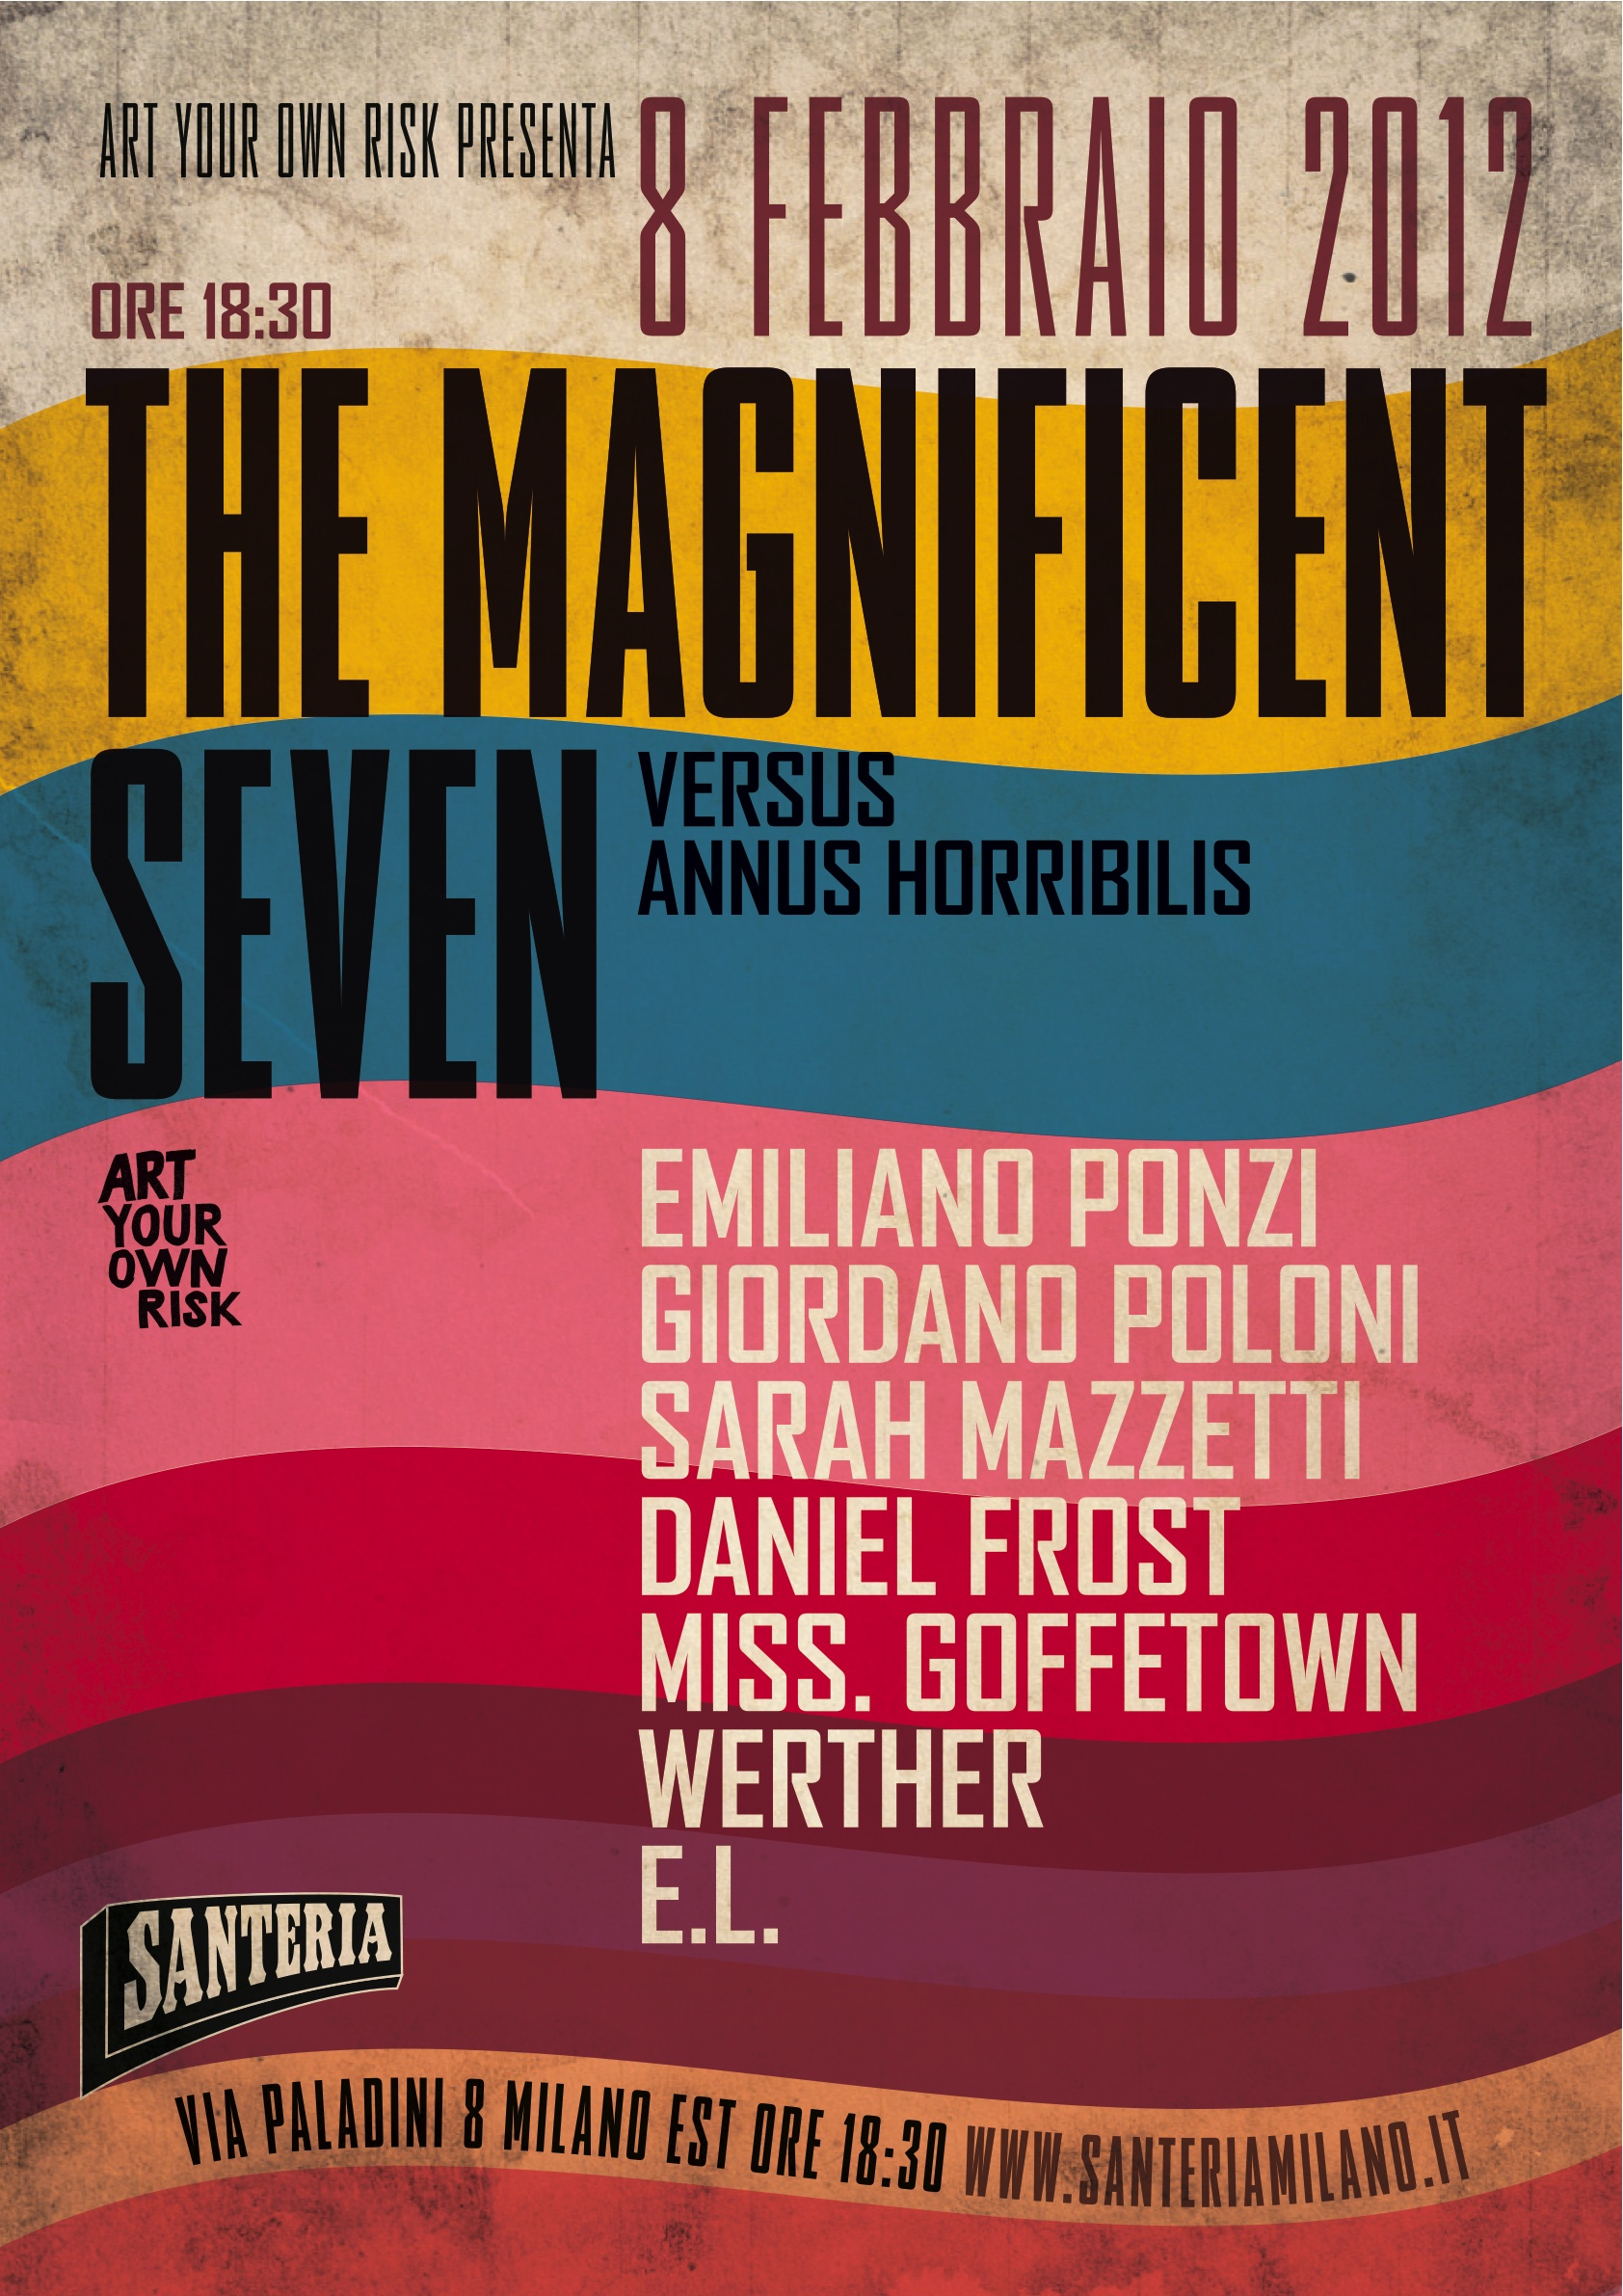 The Magnificent seven [img 1]